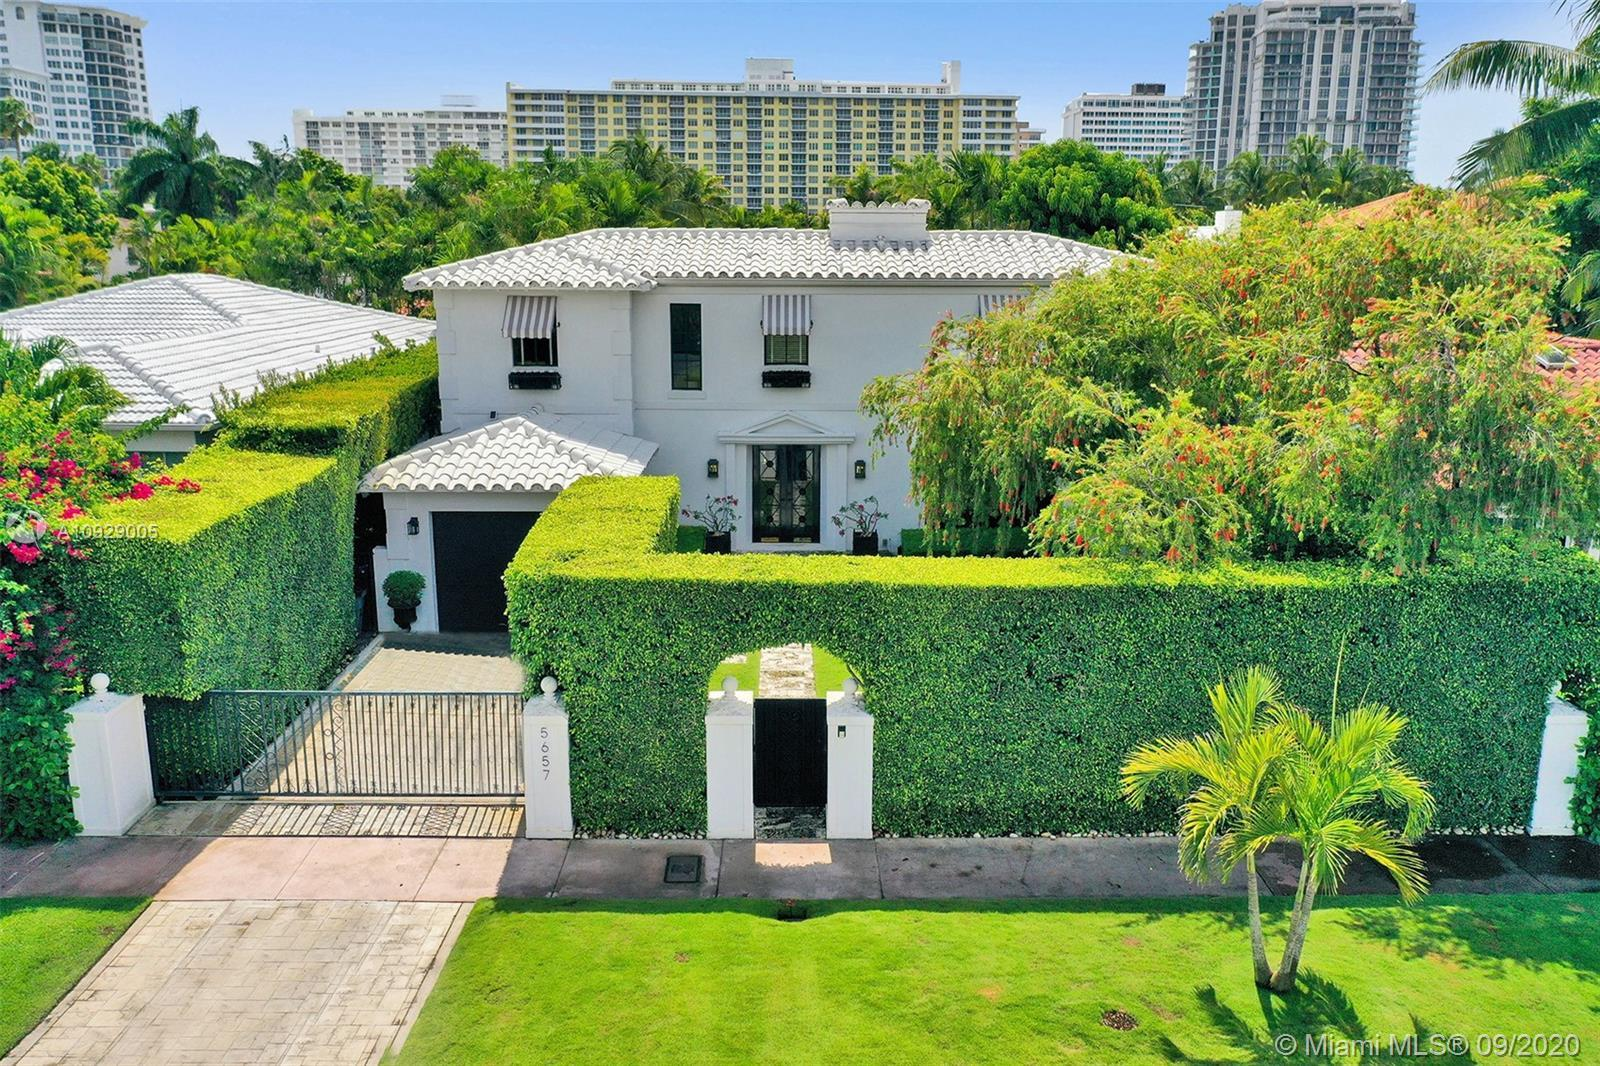 A RARE opportunity for discriminating buyers, this exclusive LaGorce Dr. property welcomes you w/a c